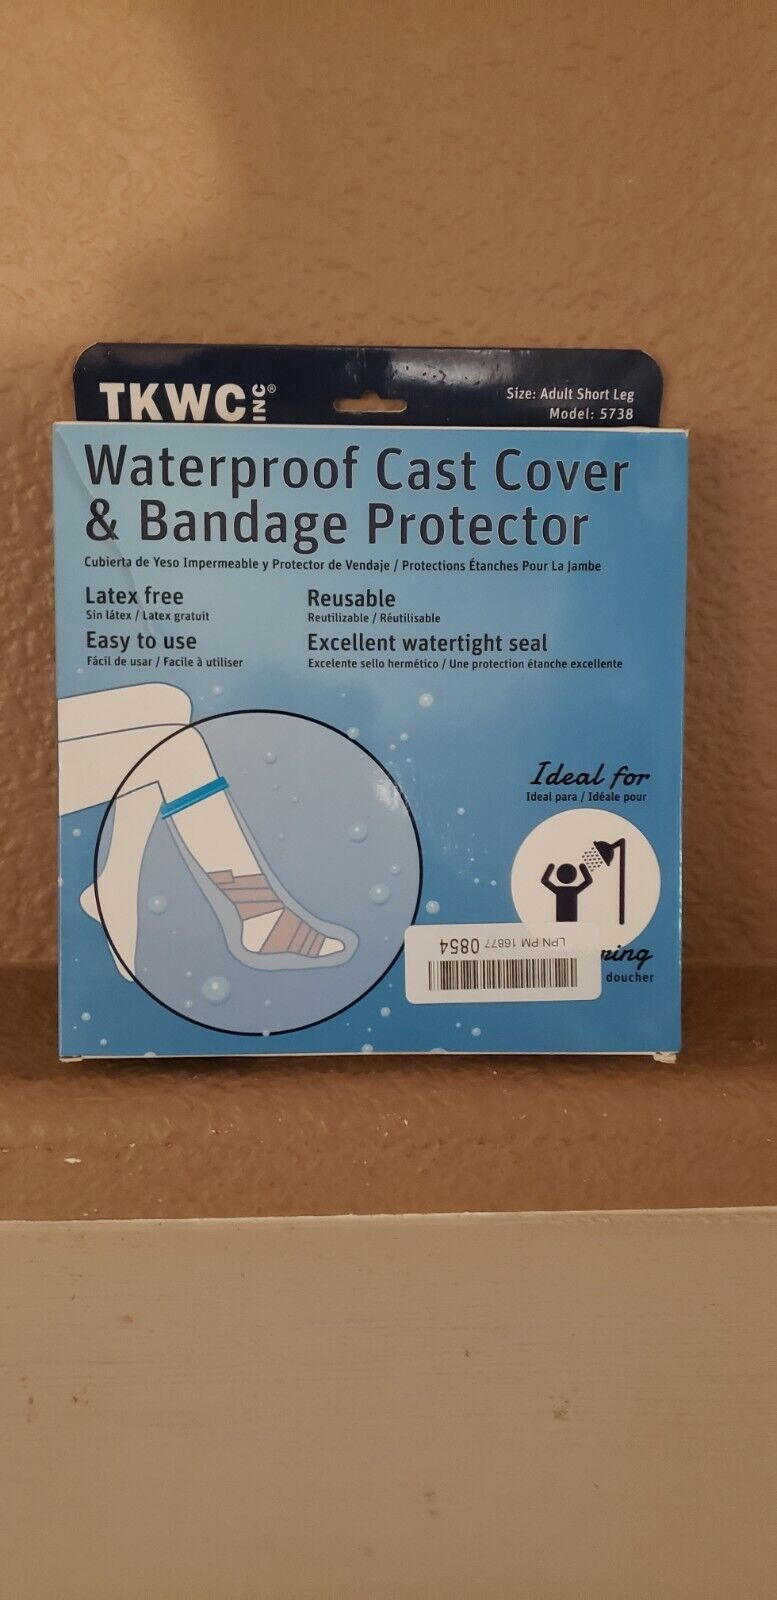 TKWC Waterproof Adult Short Leg Cast Cover Bandage Protector, Open Box - $10.00